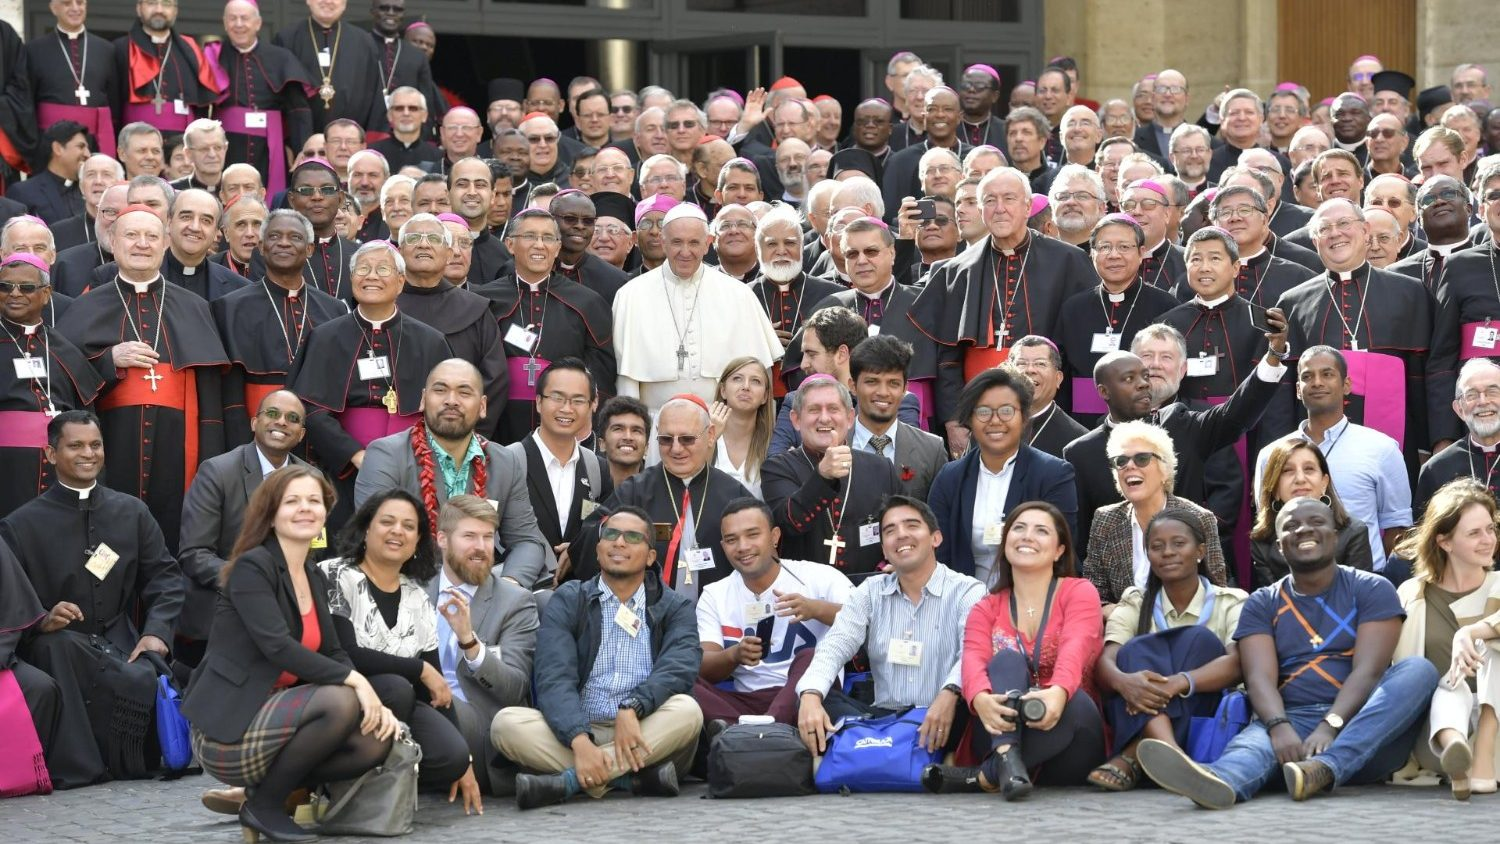 The Synod on Young People: What does the Final Document Say? - Vatican News